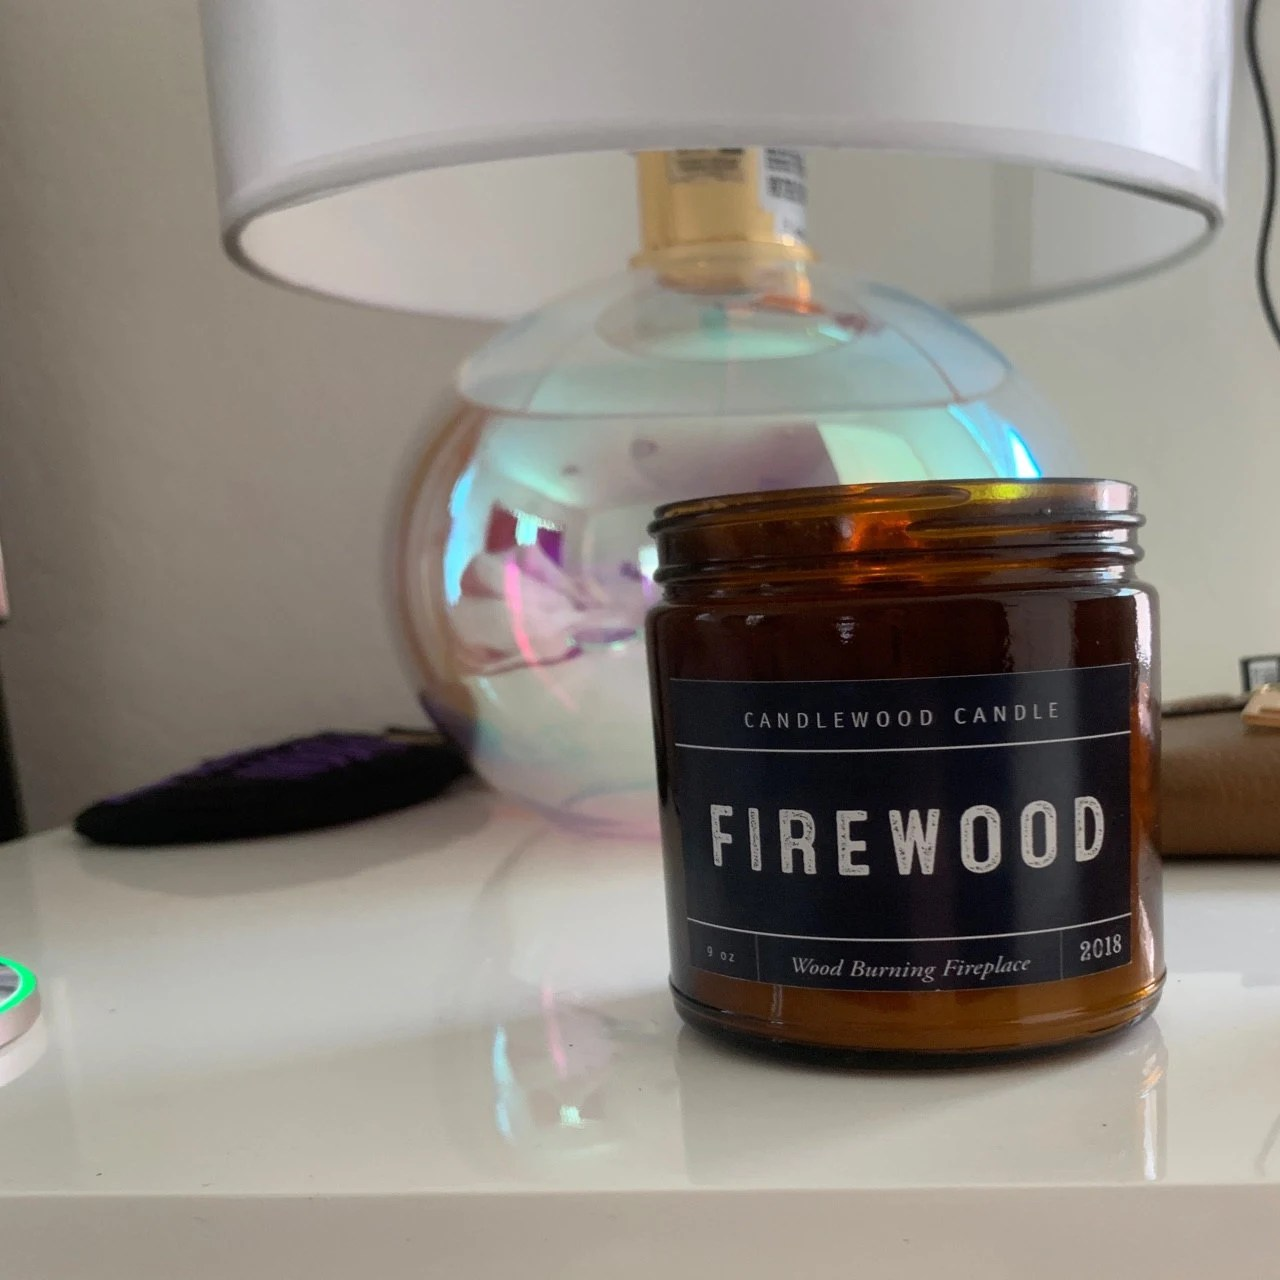 Fireplace Fragrance Oil Firewood Crackling Wood Fire Wood Burning Soy Wax Fireplace